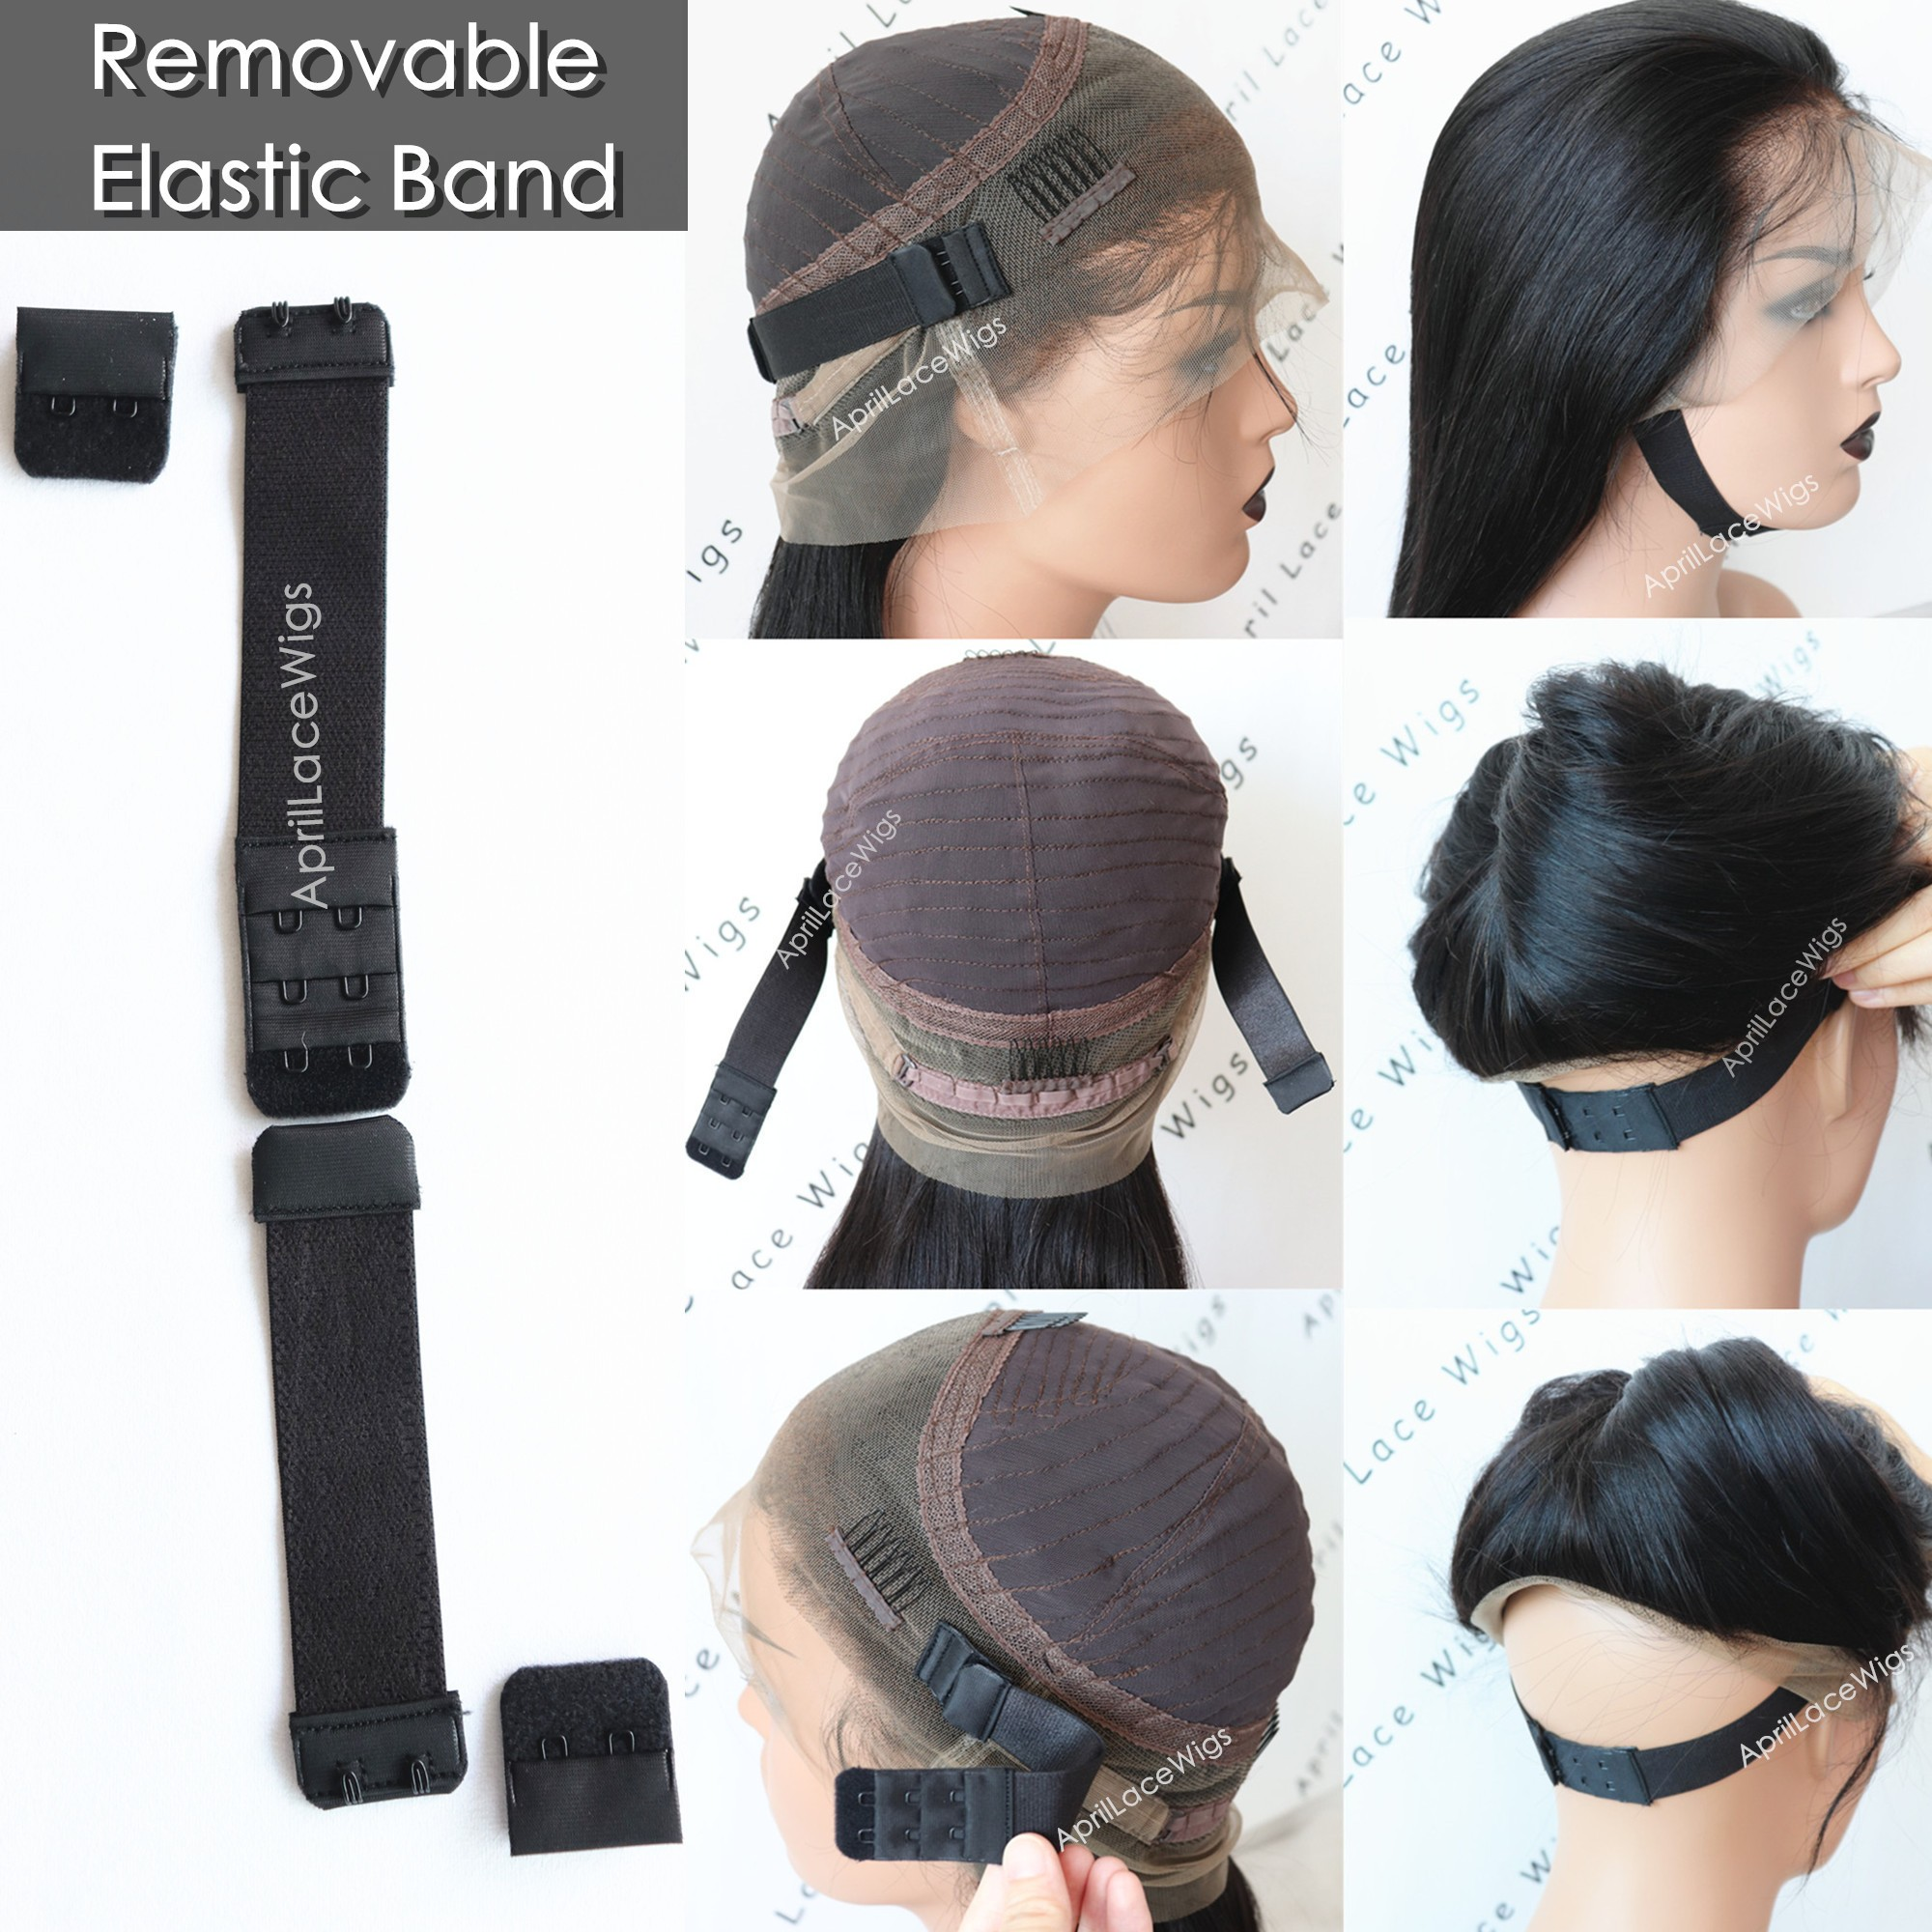 Adjustable Removable Extra Elastic Band For Lace Wigs Glueless Wig Installation